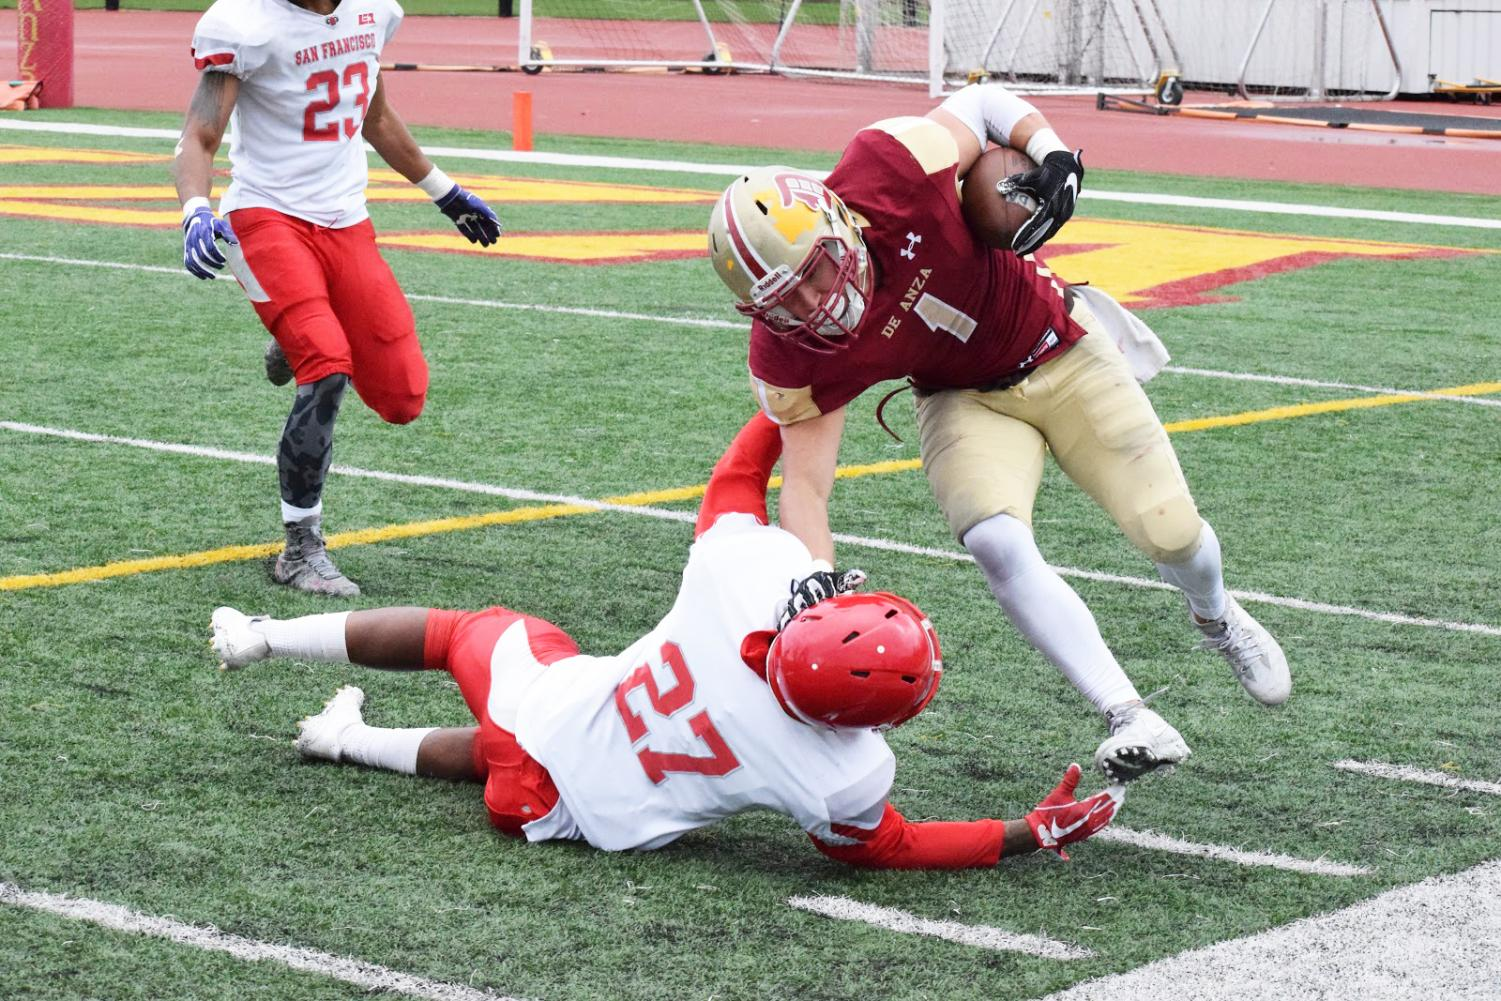 Paul Lomanto stiff-arms a San Francisco defender during a game on Nov. 4. The Dons lost, 58-0.